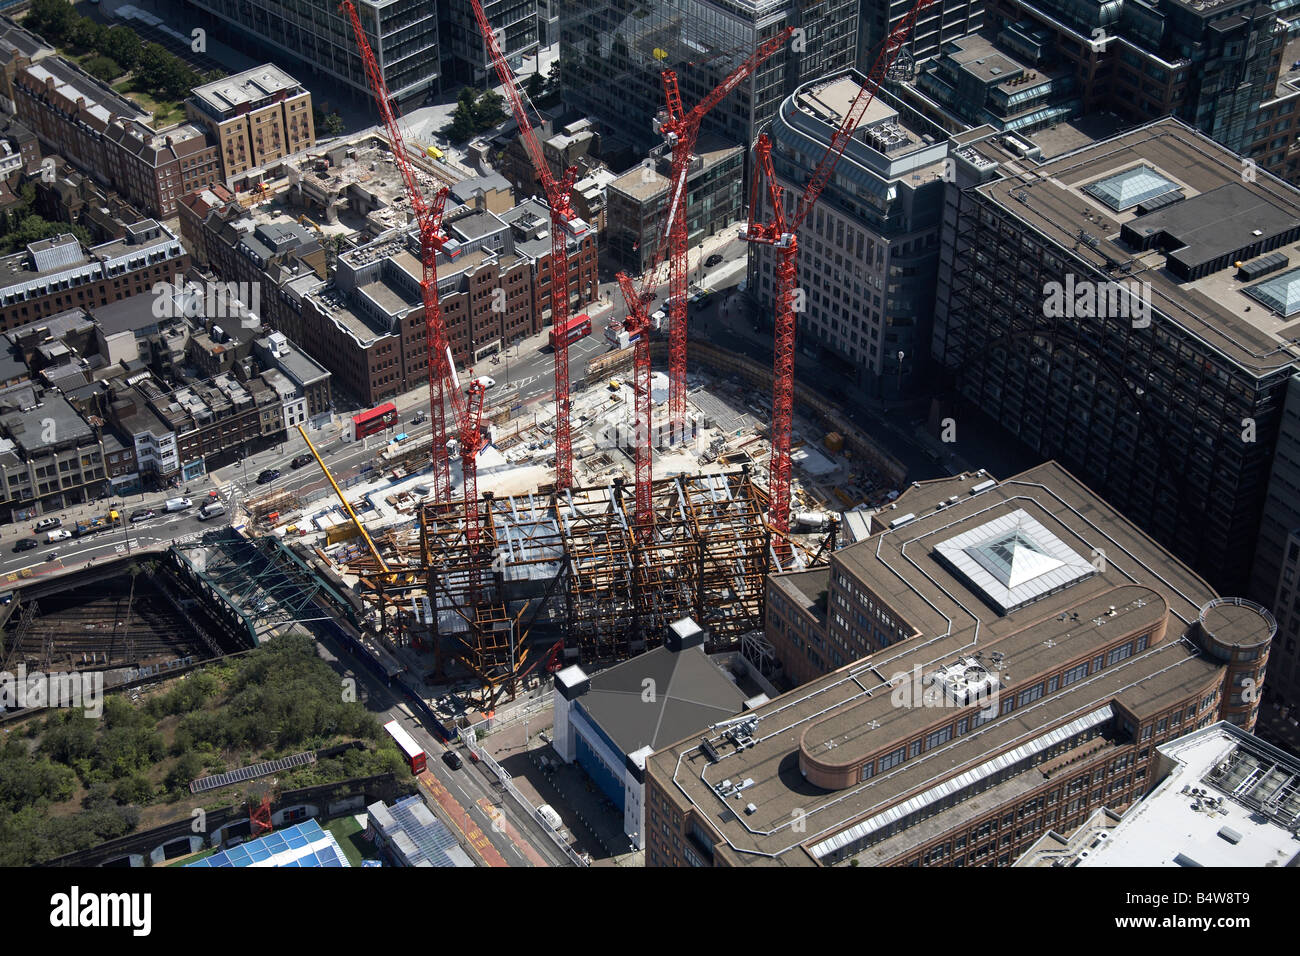 Aerial view south east of Broadgate Tower Construction Site Norton Folgate City of London EC2 E1 England UK High - Stock Image